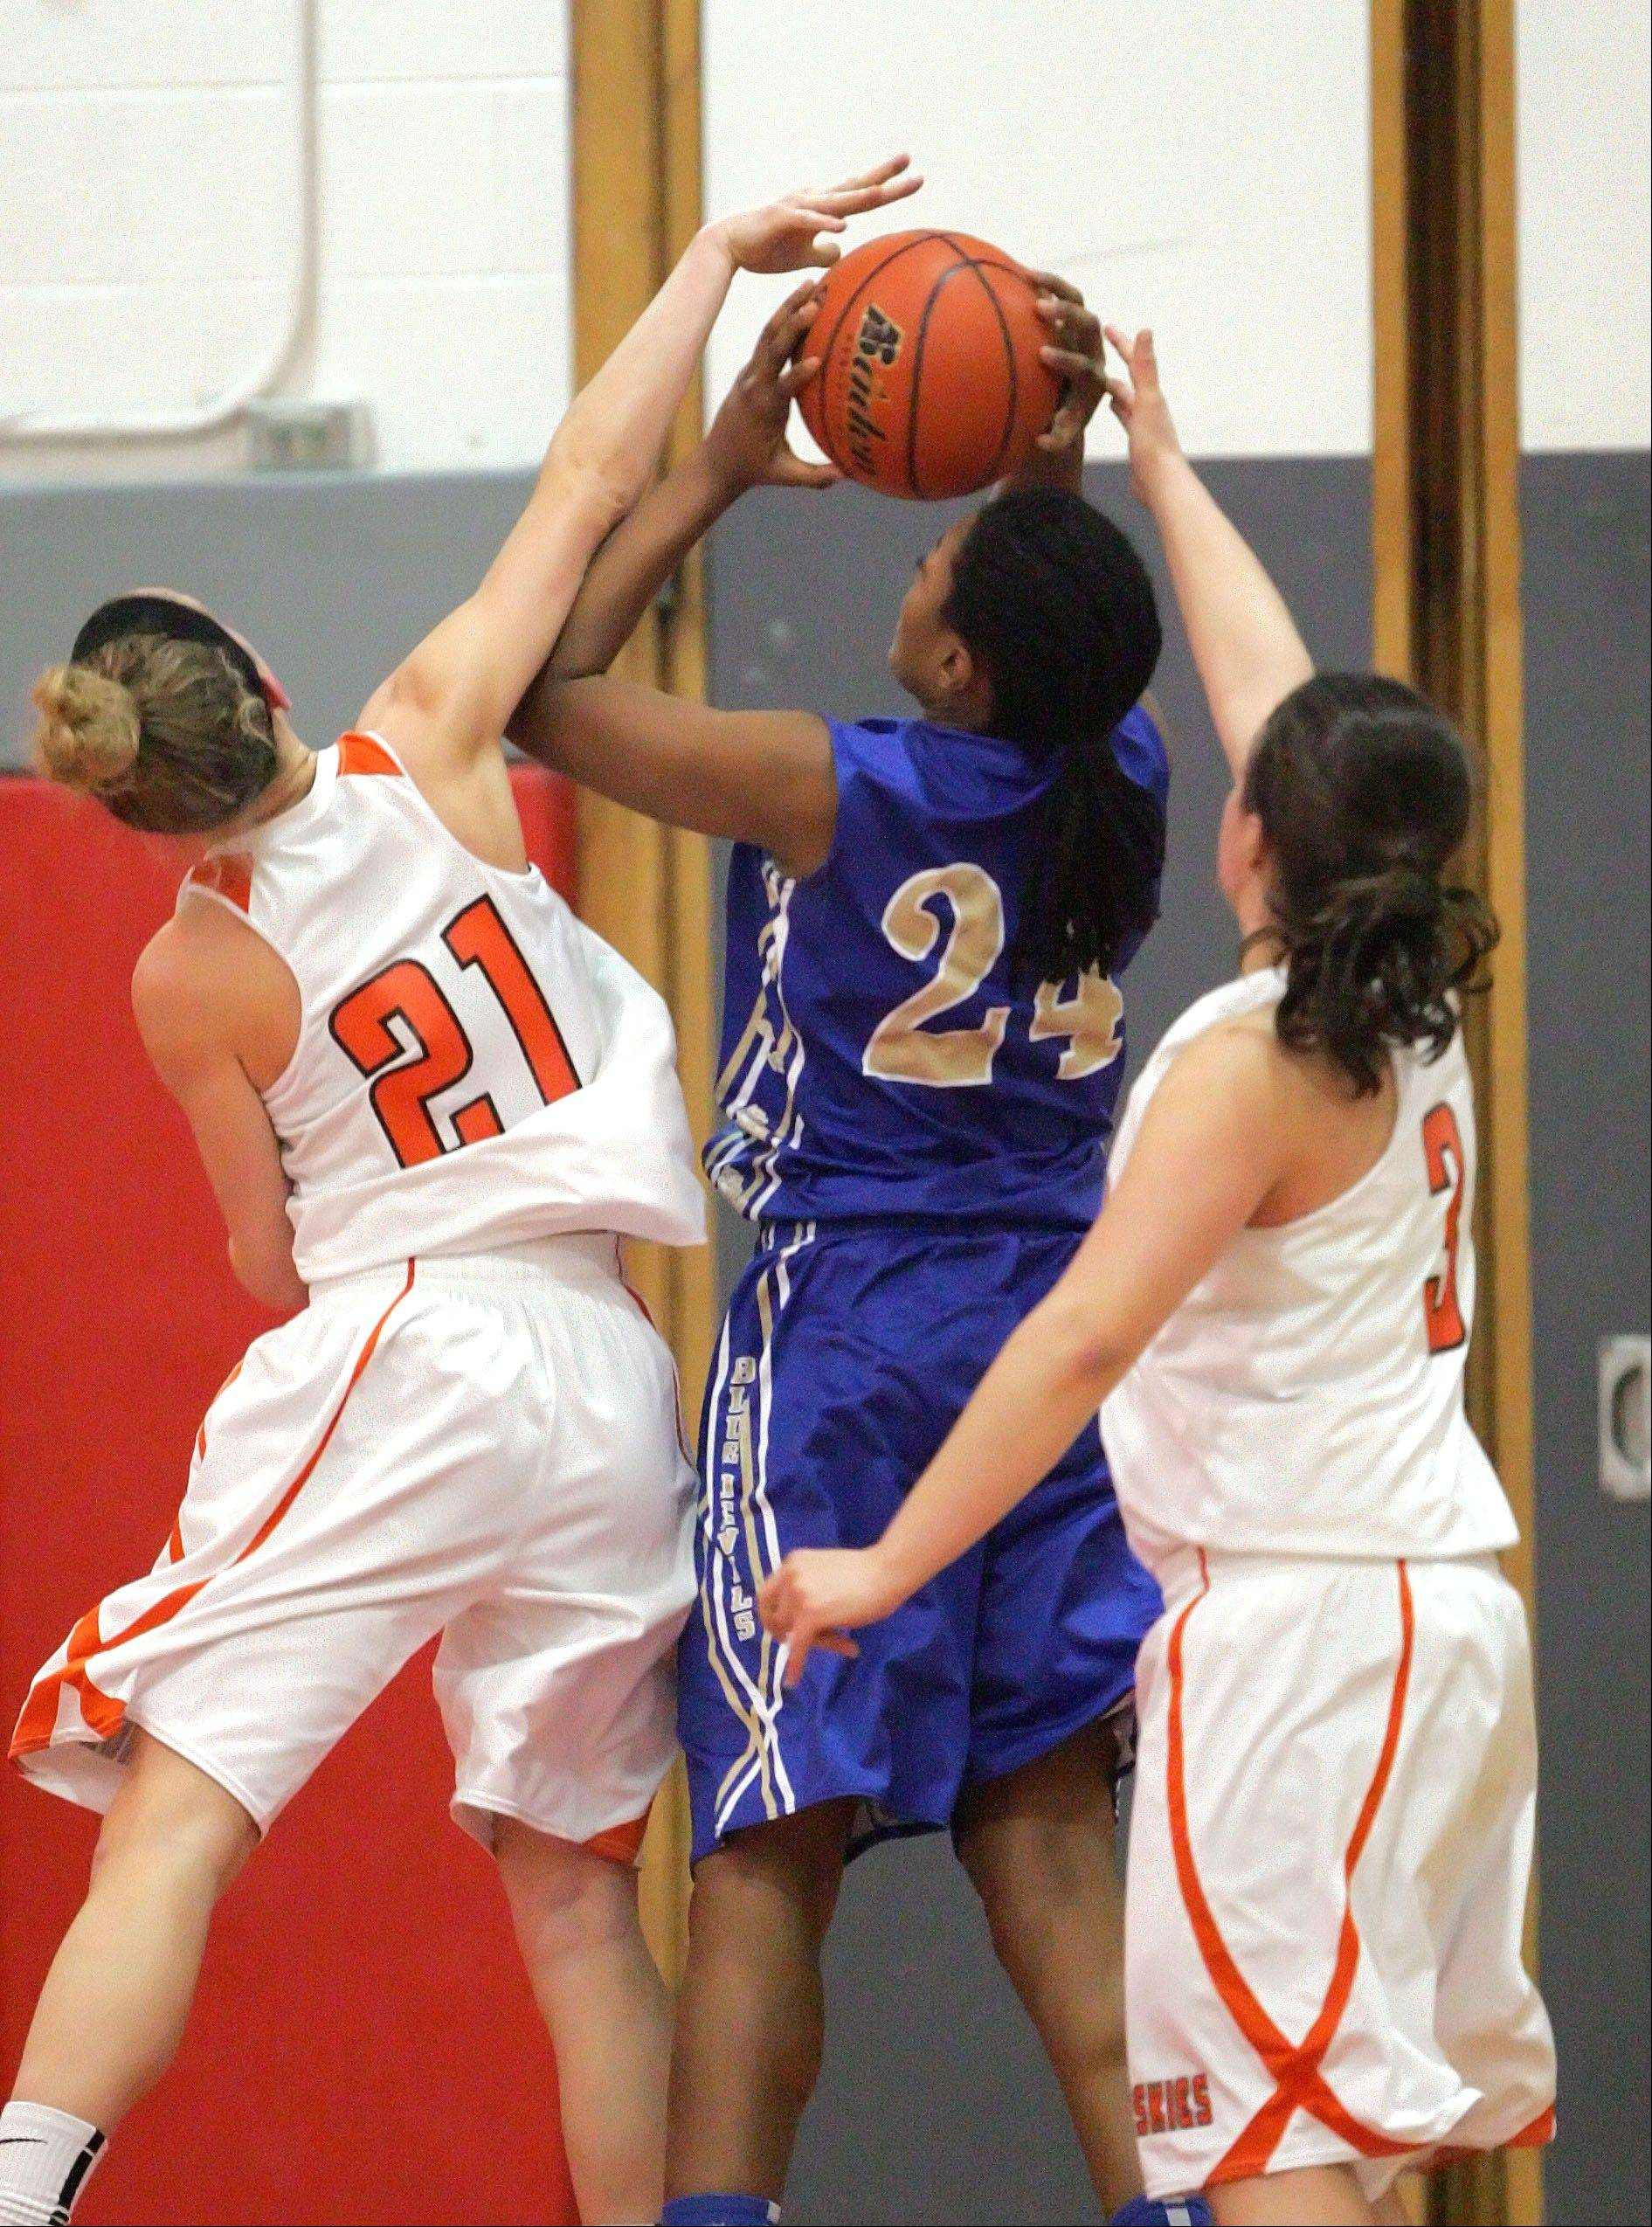 Images from the Hersey vs. Warren girls basketball game on Tuesday, Feb. 12 in Mundelein.